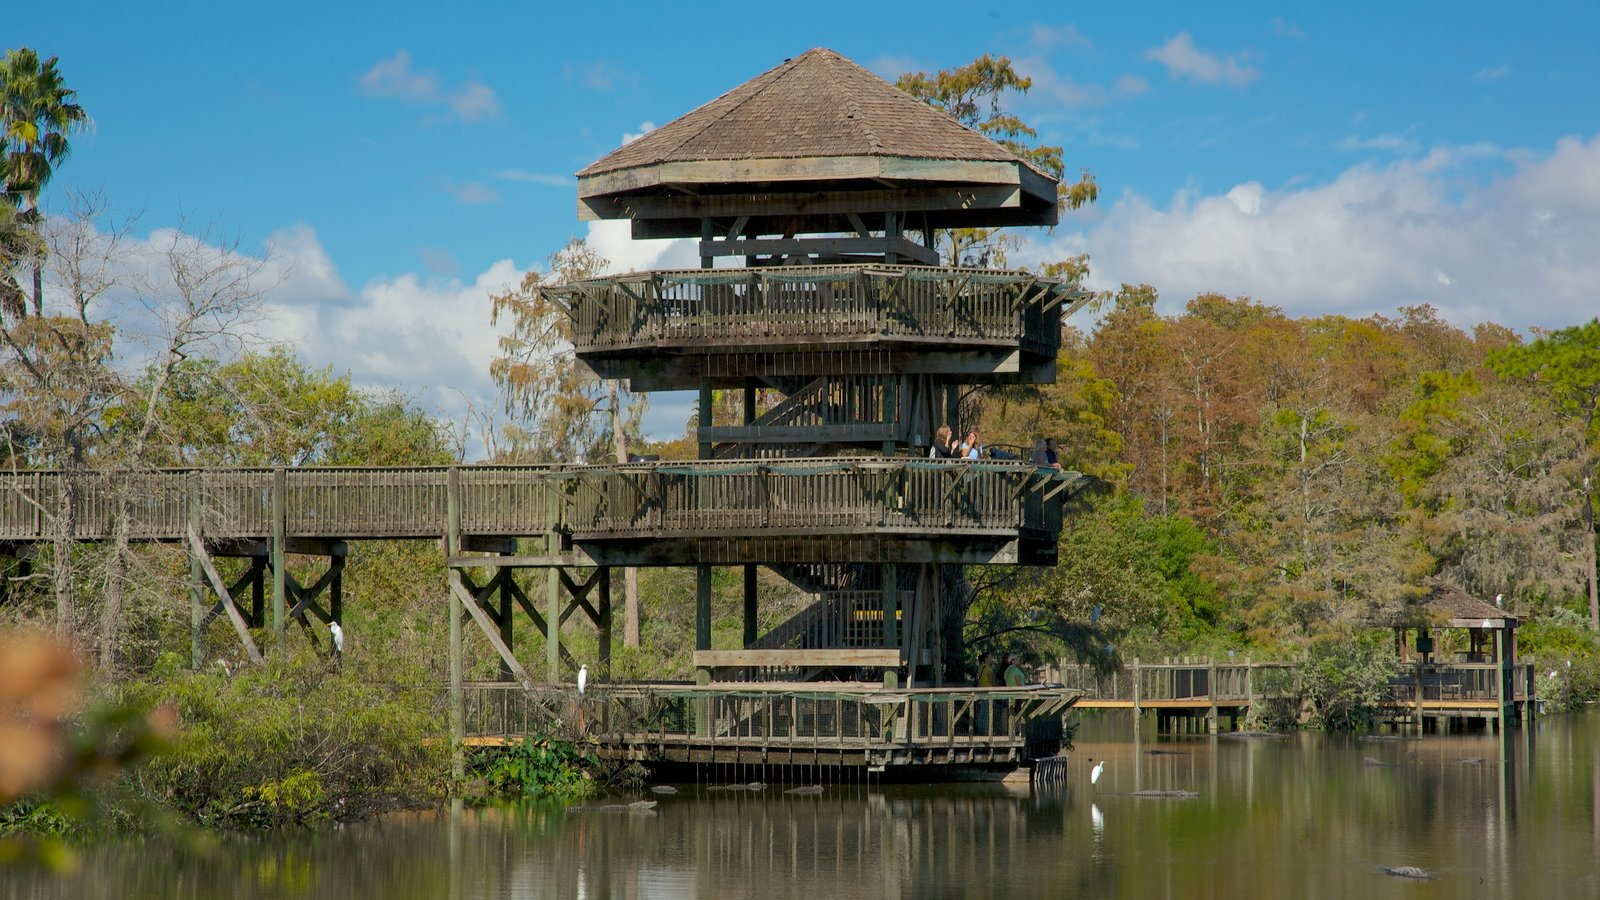 Gatorland showing a park, forests and a pond